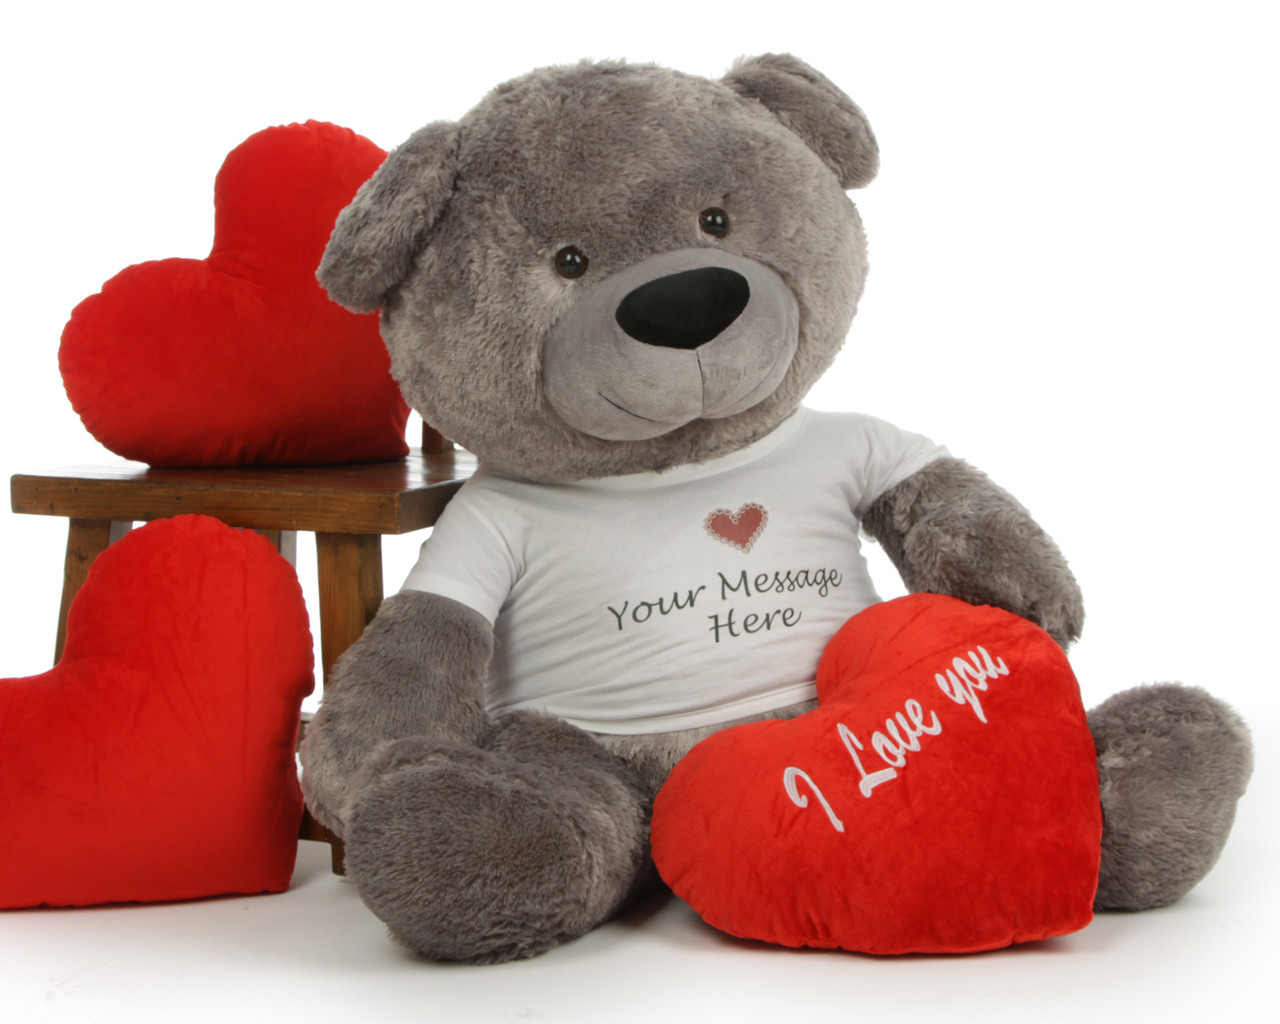 Diamond Shags Personalized Valentine's Day Teddy Bear with 'I Love You' Heart Pillow -